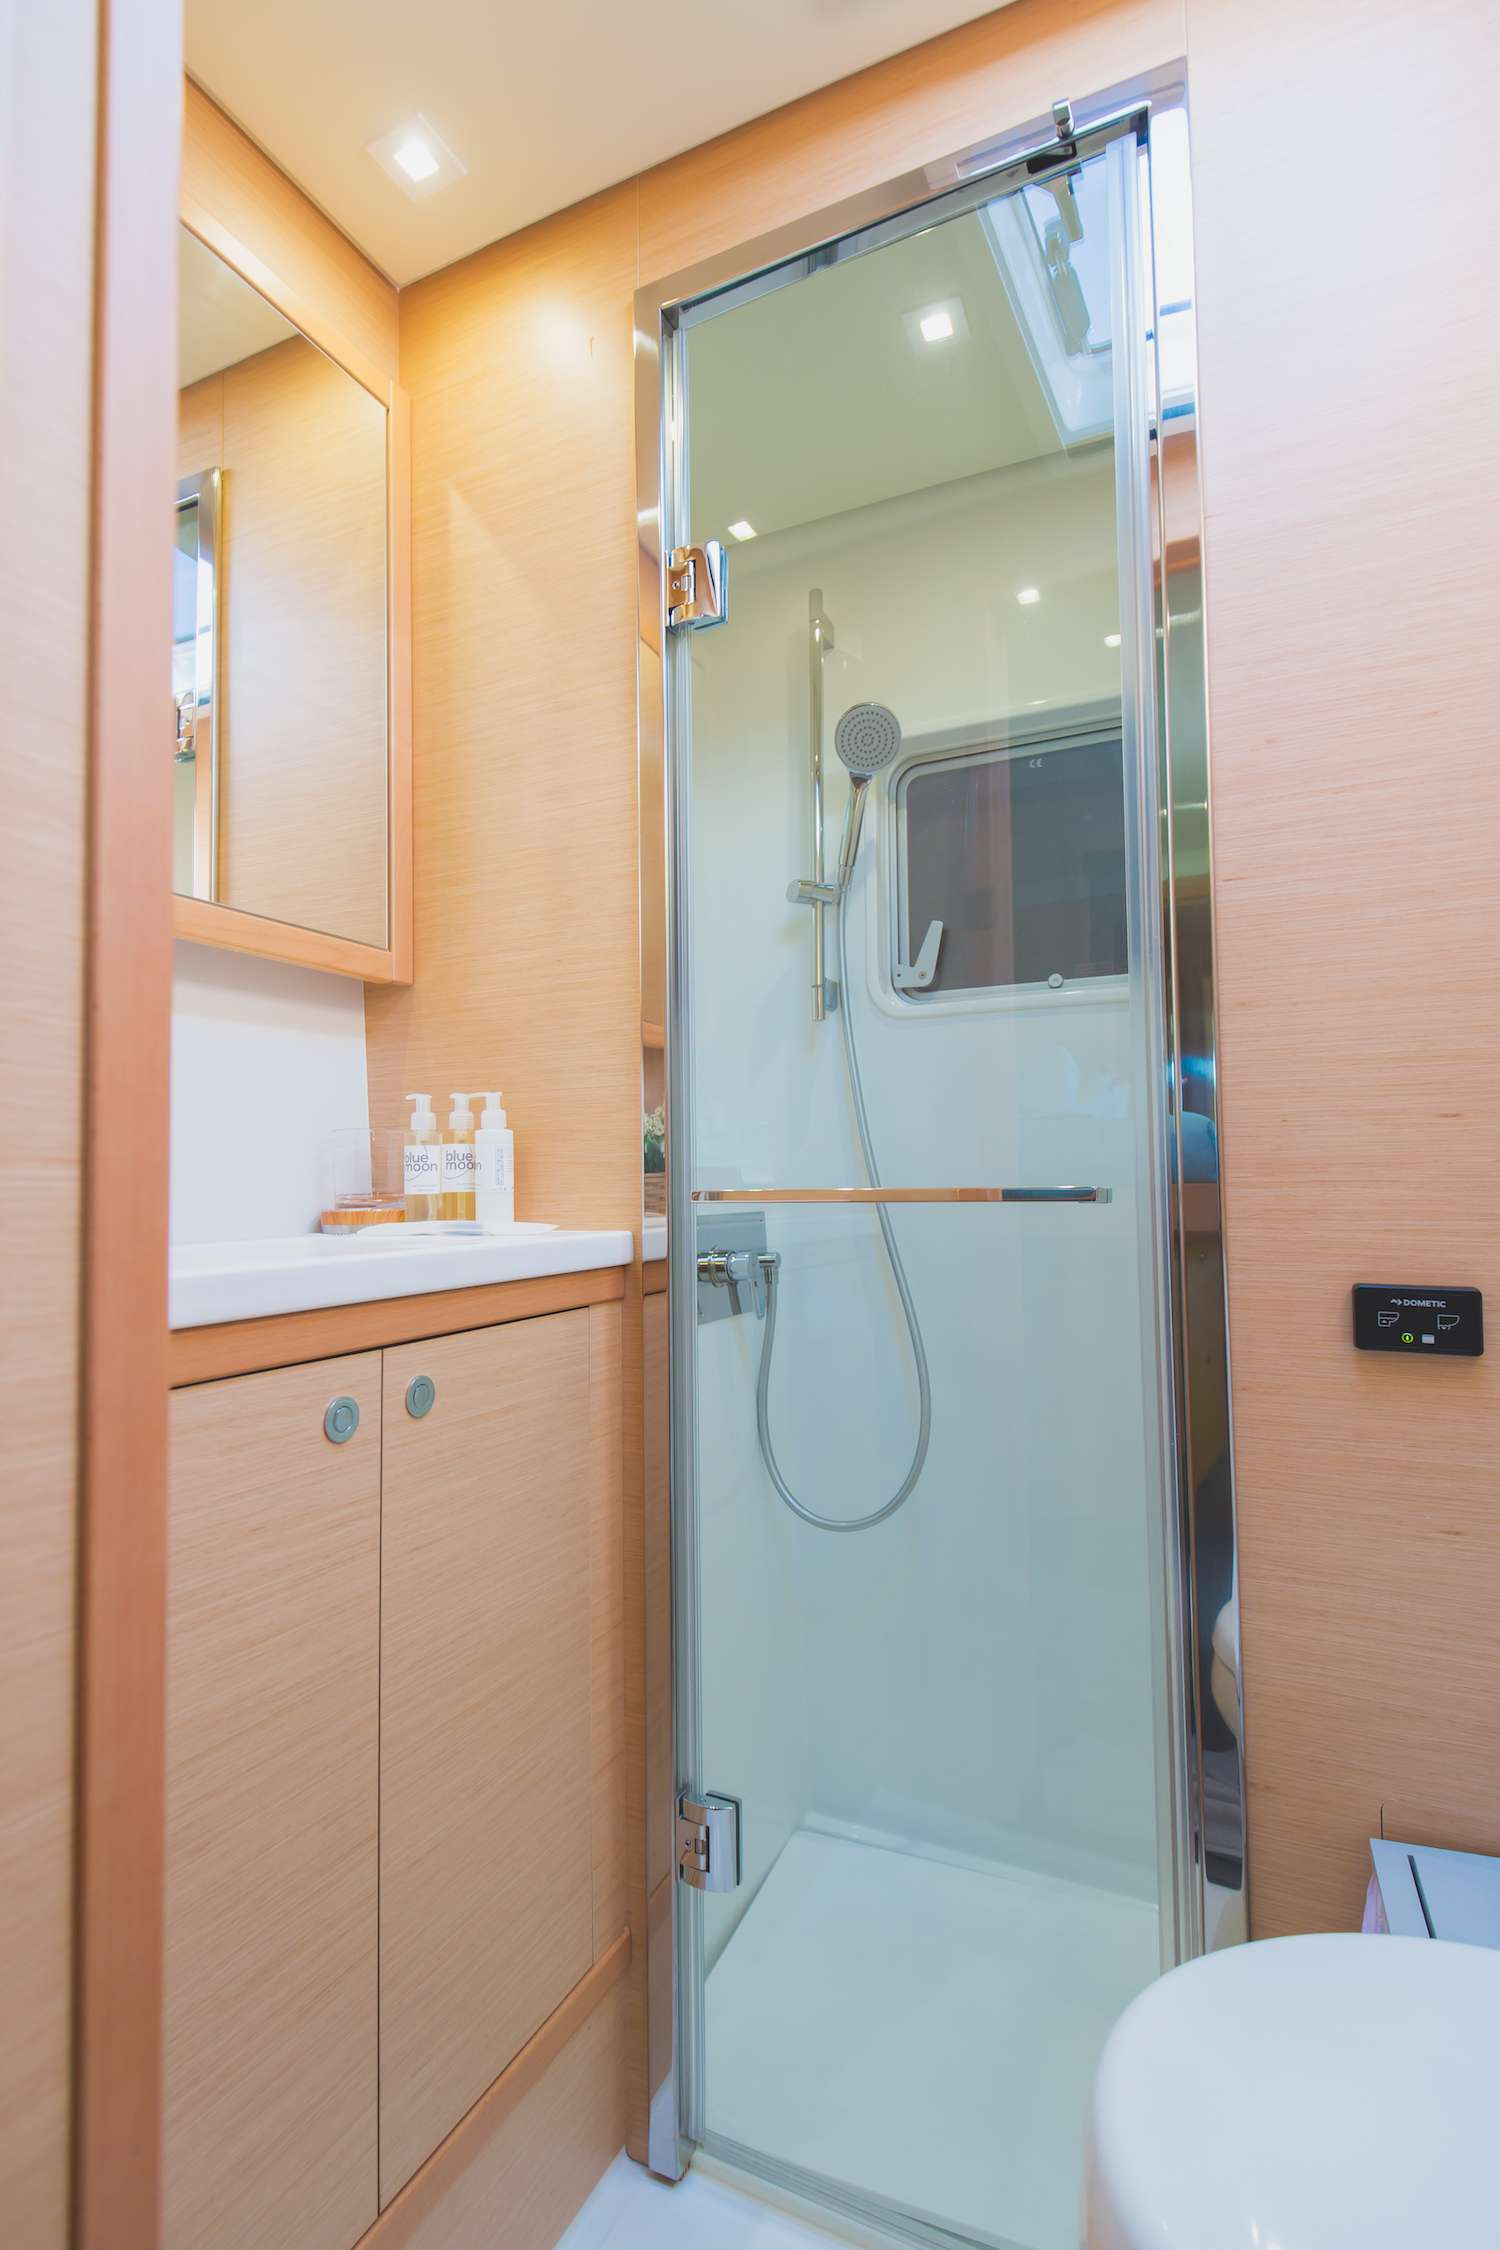 Bathroom with separate show